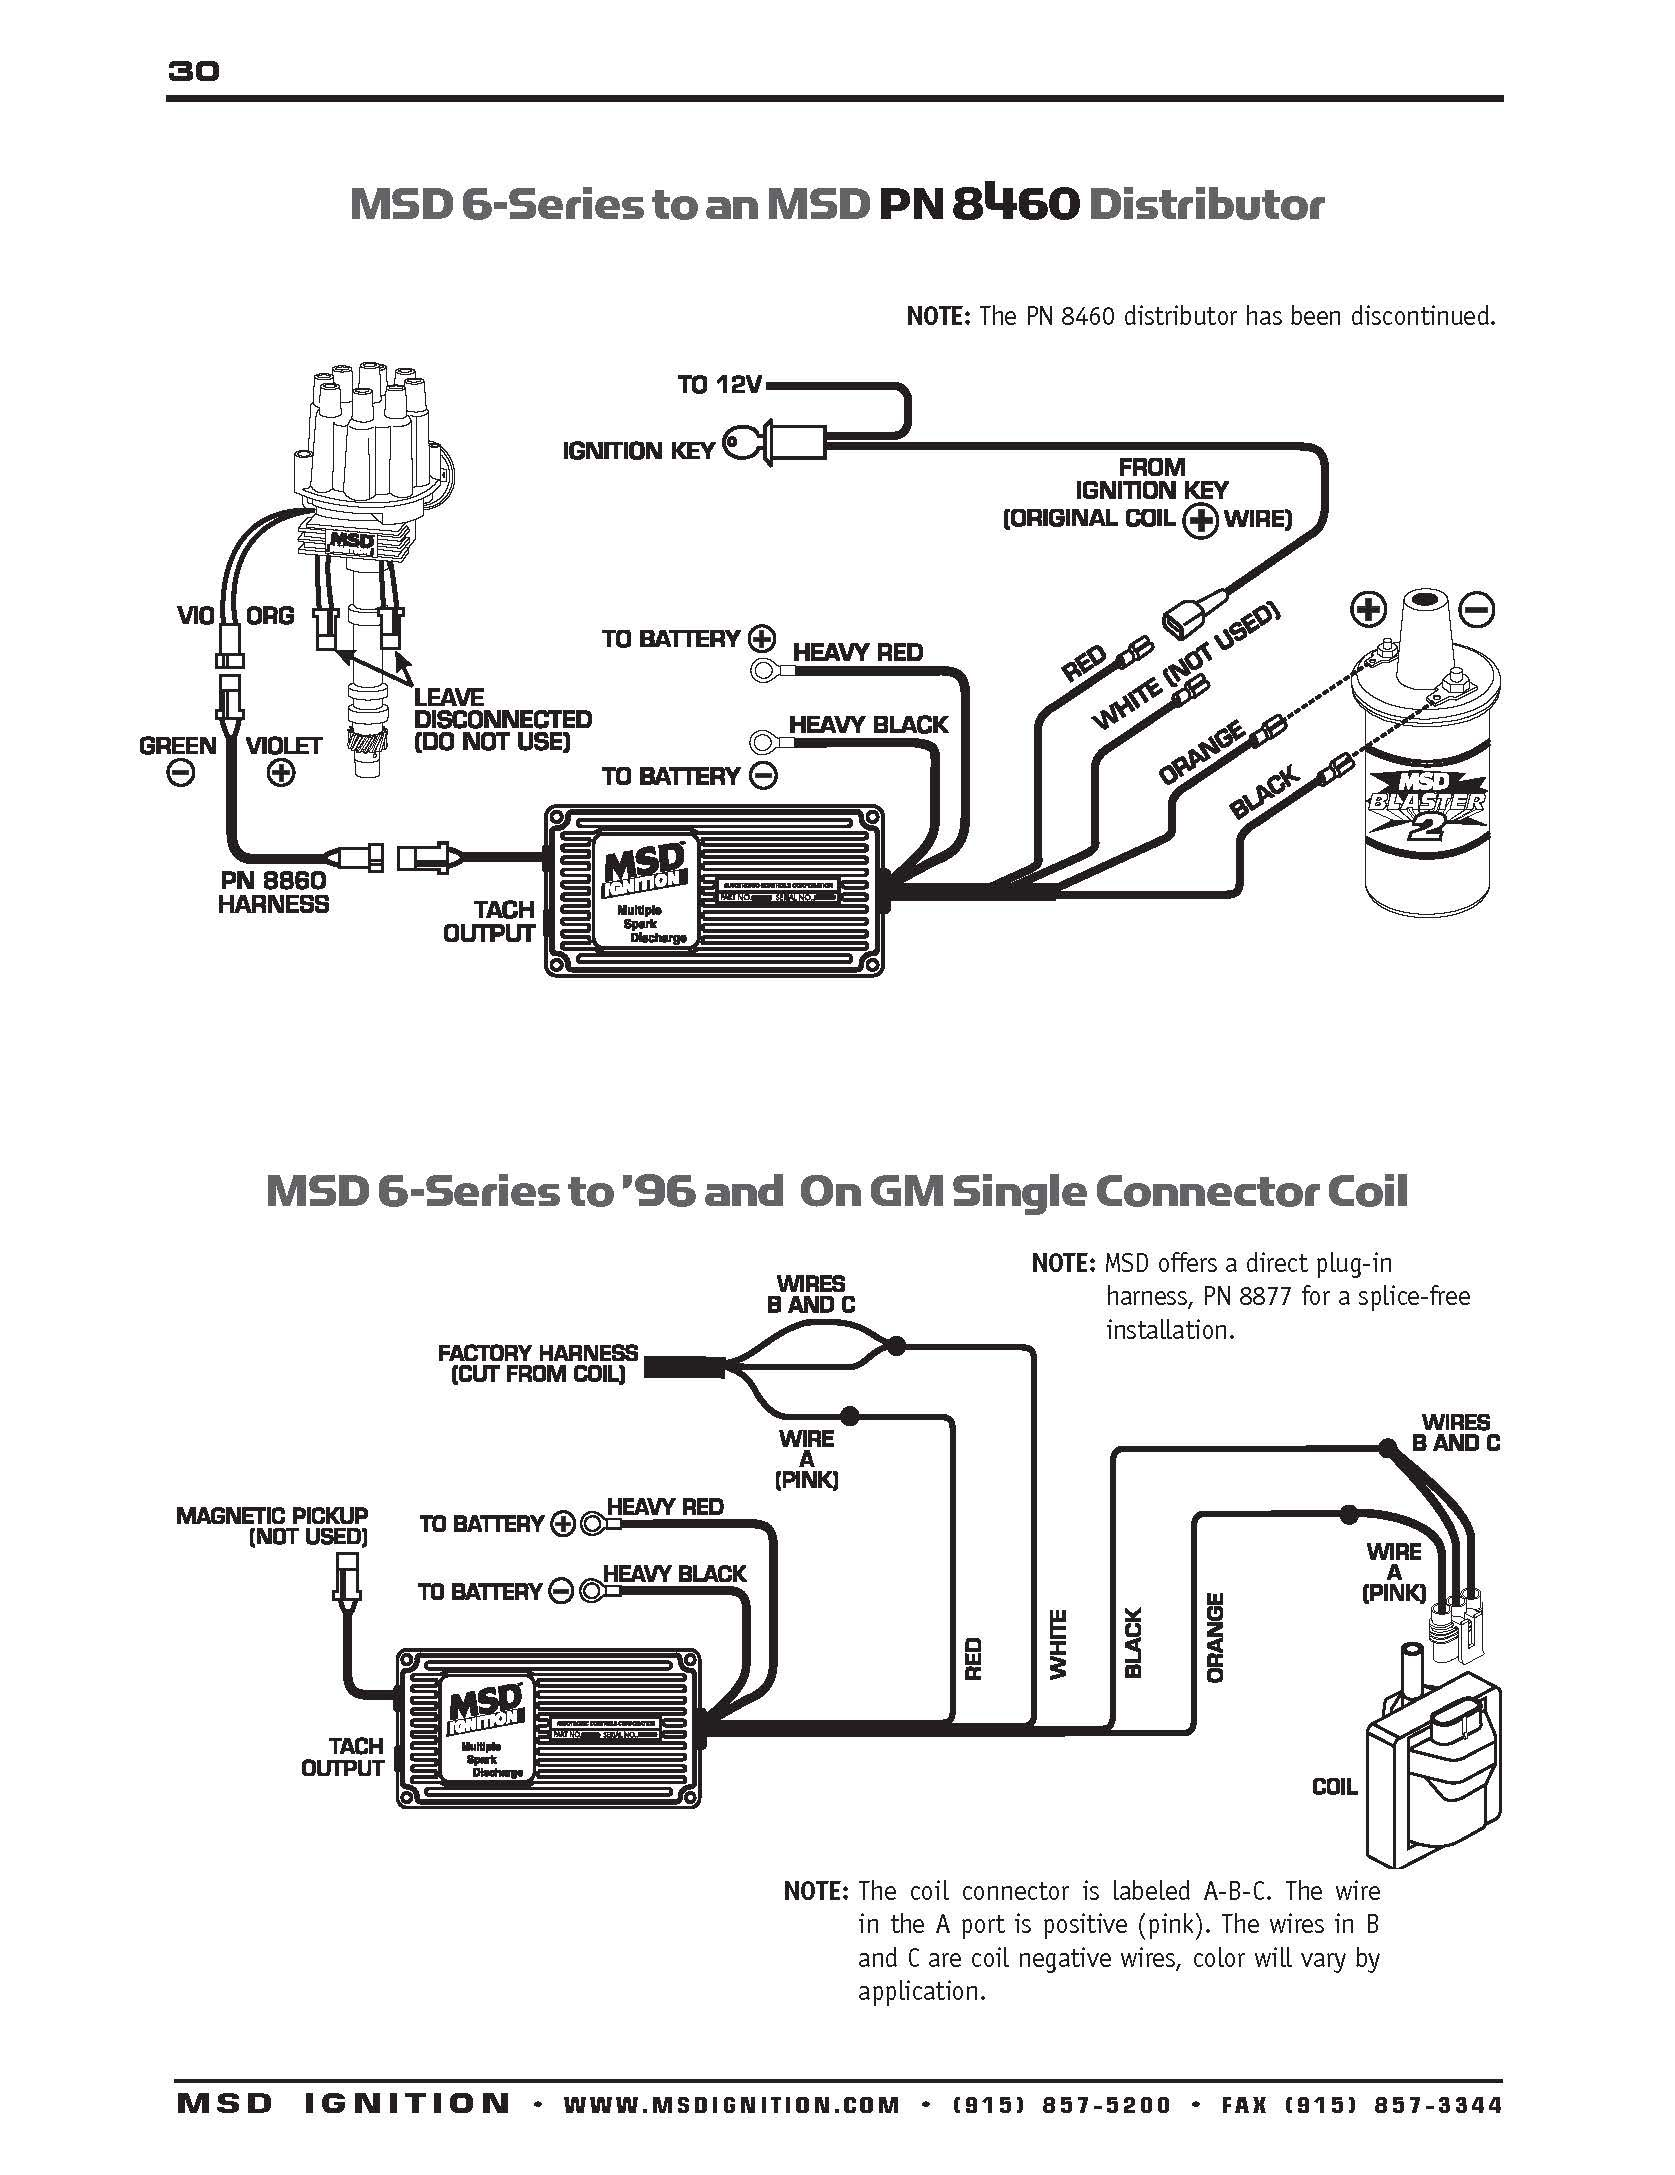 Ignition Coil Wiring Diagram : ignition, wiring, diagram, Ignition, Wiring, Diagrams, Distributor, Diagram, Diagram,, Coil,